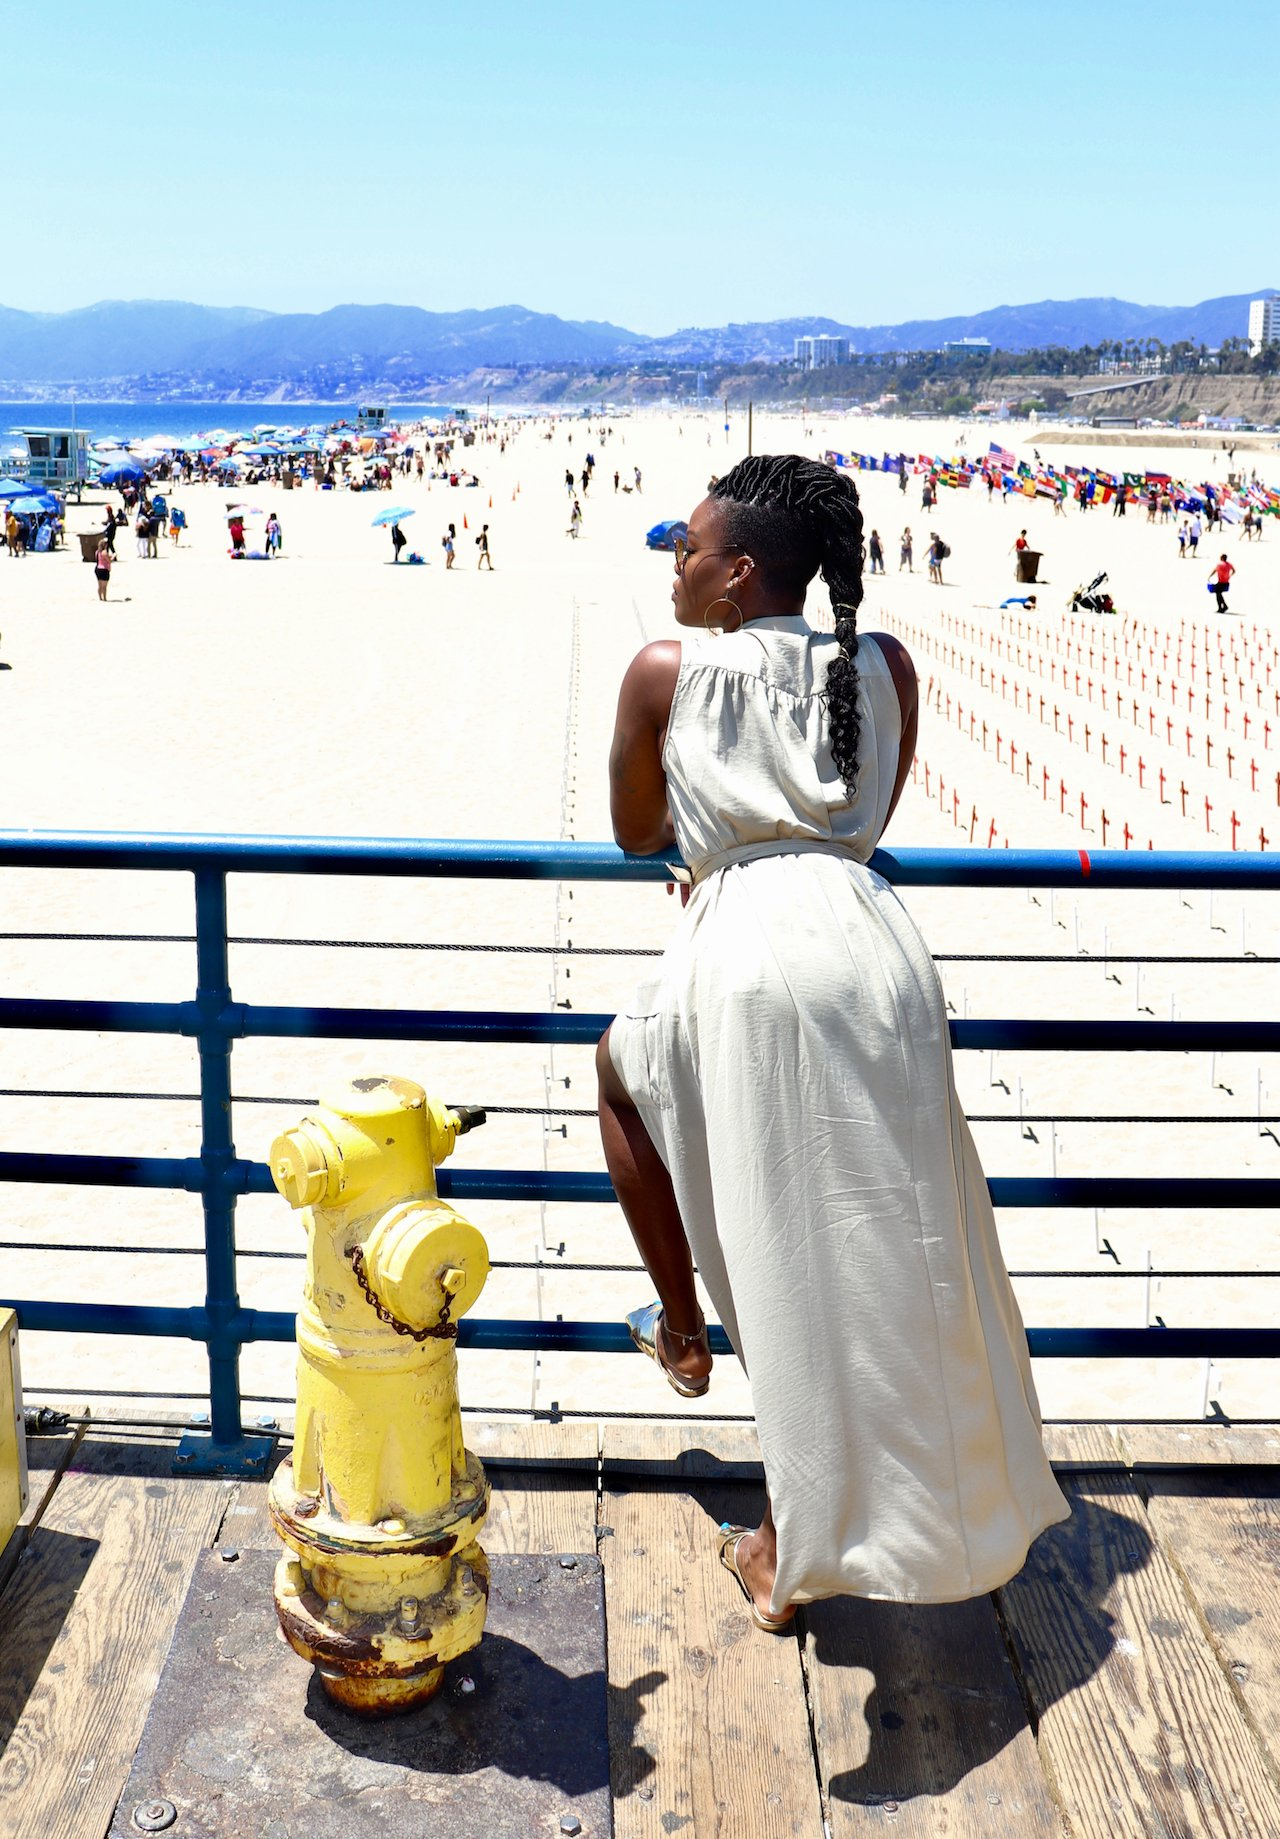 Day Trip to Santa Monica Pier